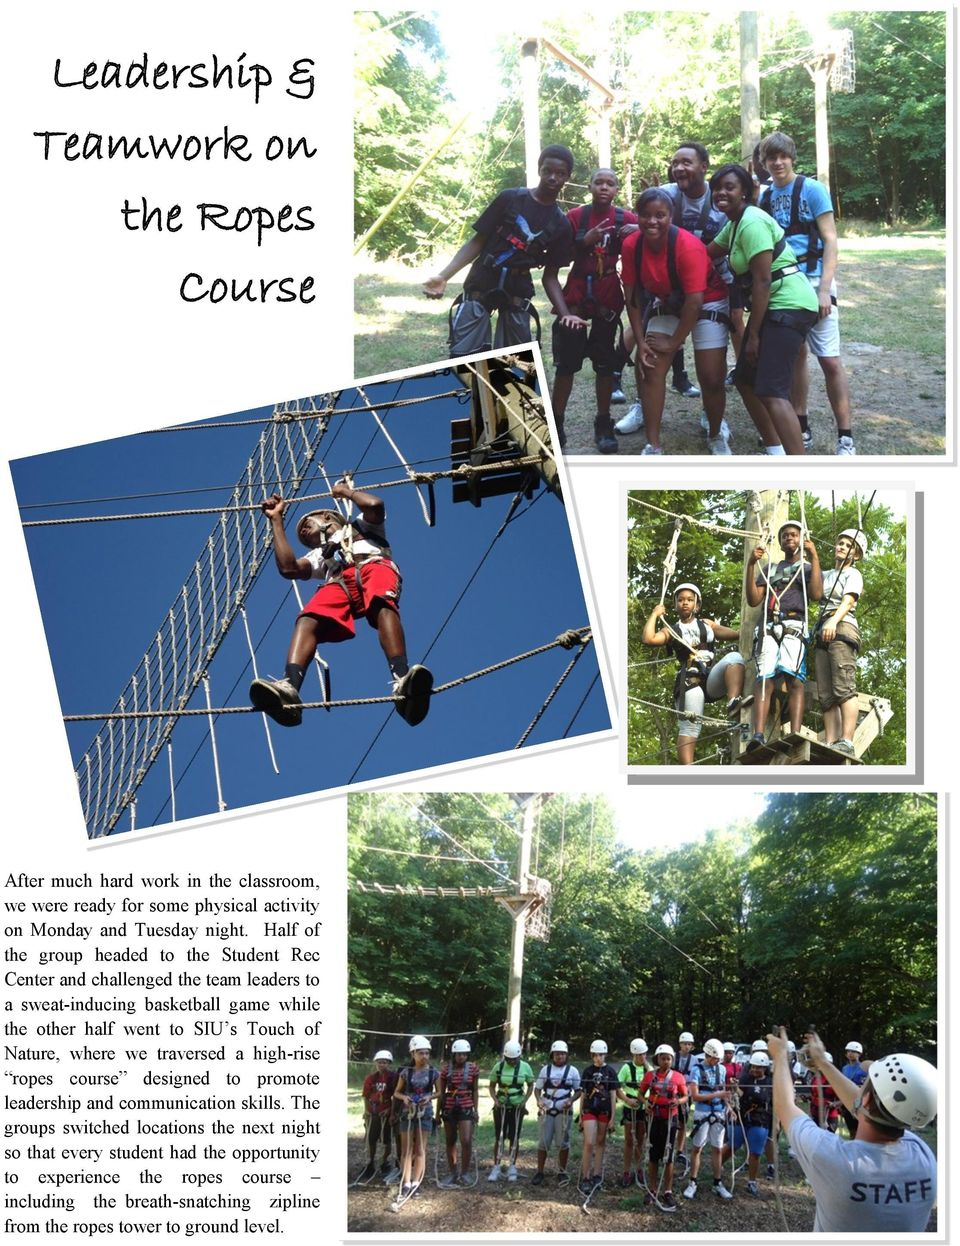 Touch of Nature, where we traversed a high-rise ropes course designed to promote leadership and communication skills.